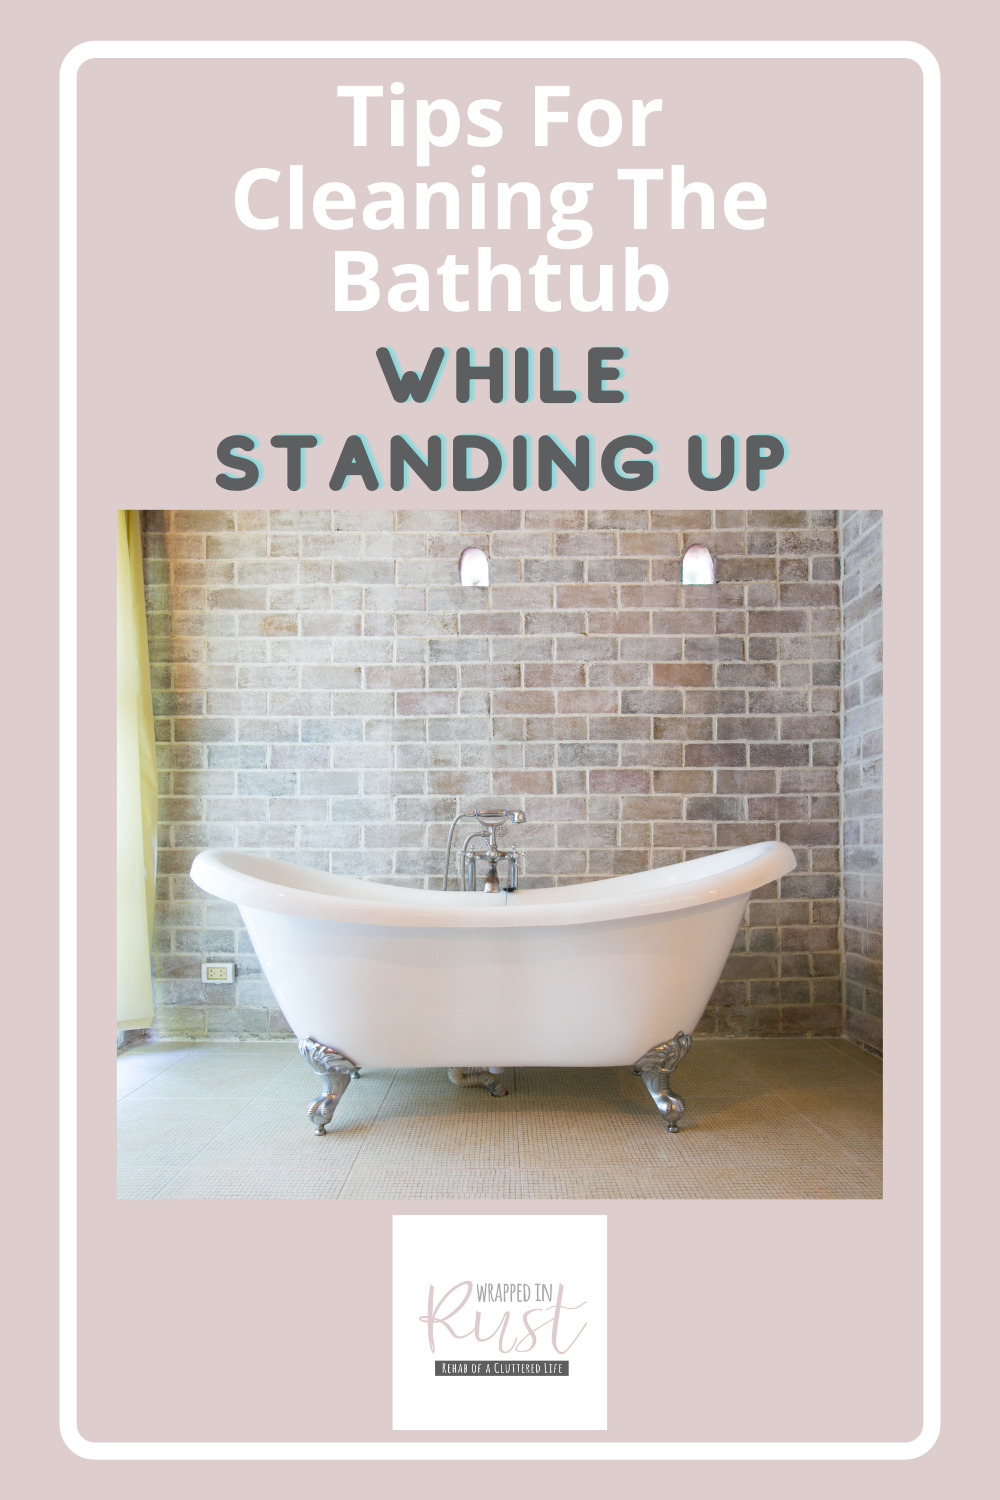 Wrappedinrust.com is filled full of genius cleaning ideas for all of your toughest messes and stains. Get ready for a big cleaning job! Find out the easiest way to clean your bathtub without even bending over!